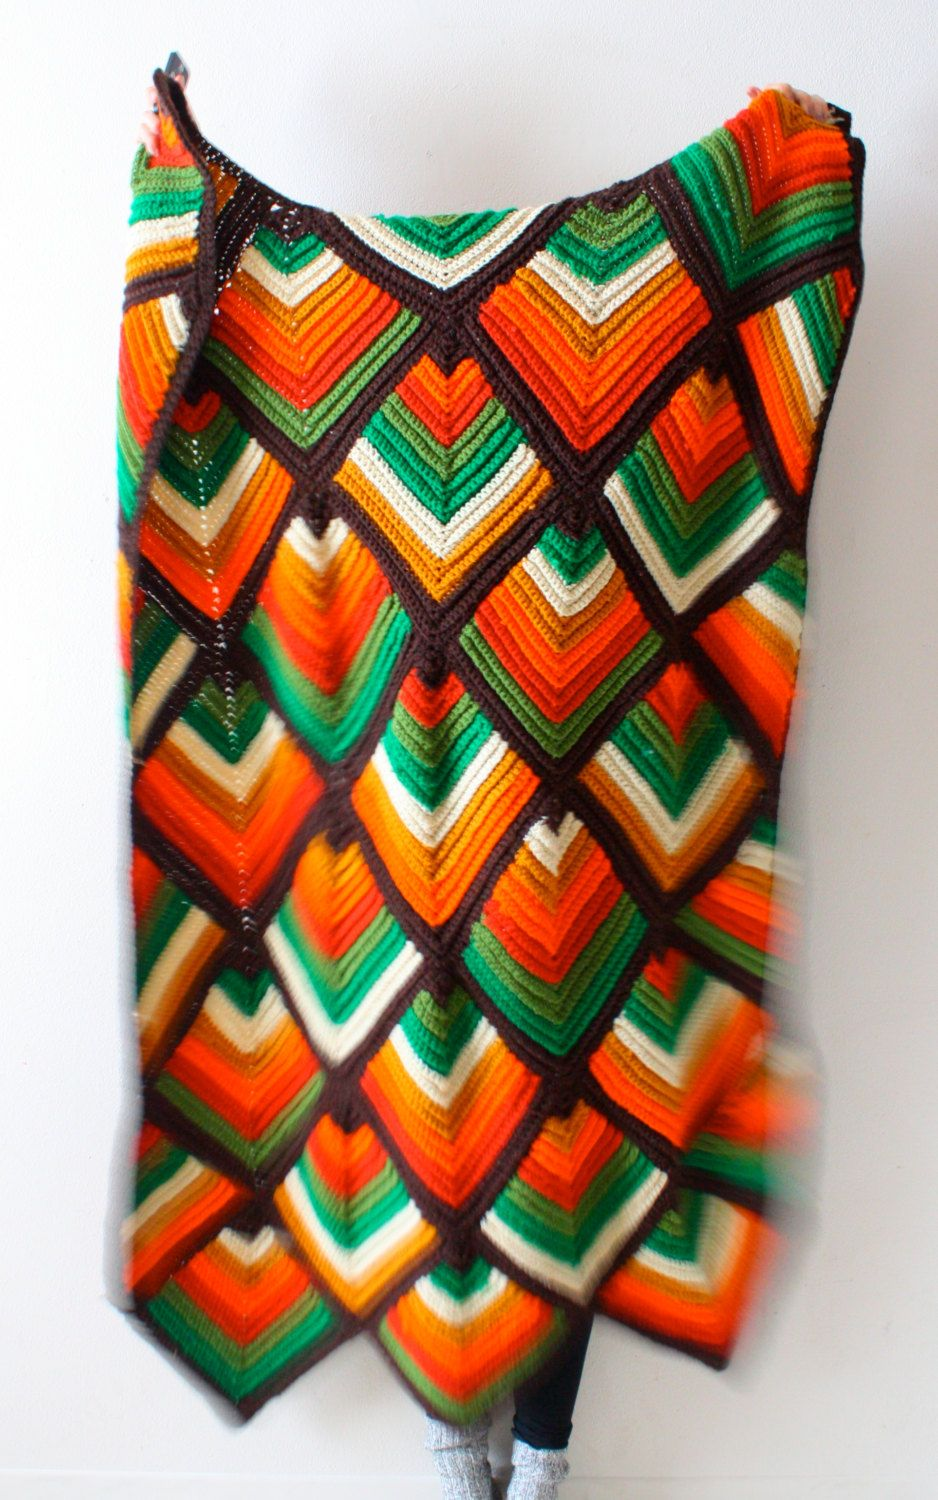 Vintage/retro navajo bohemian aztec blanket orange brown green ...